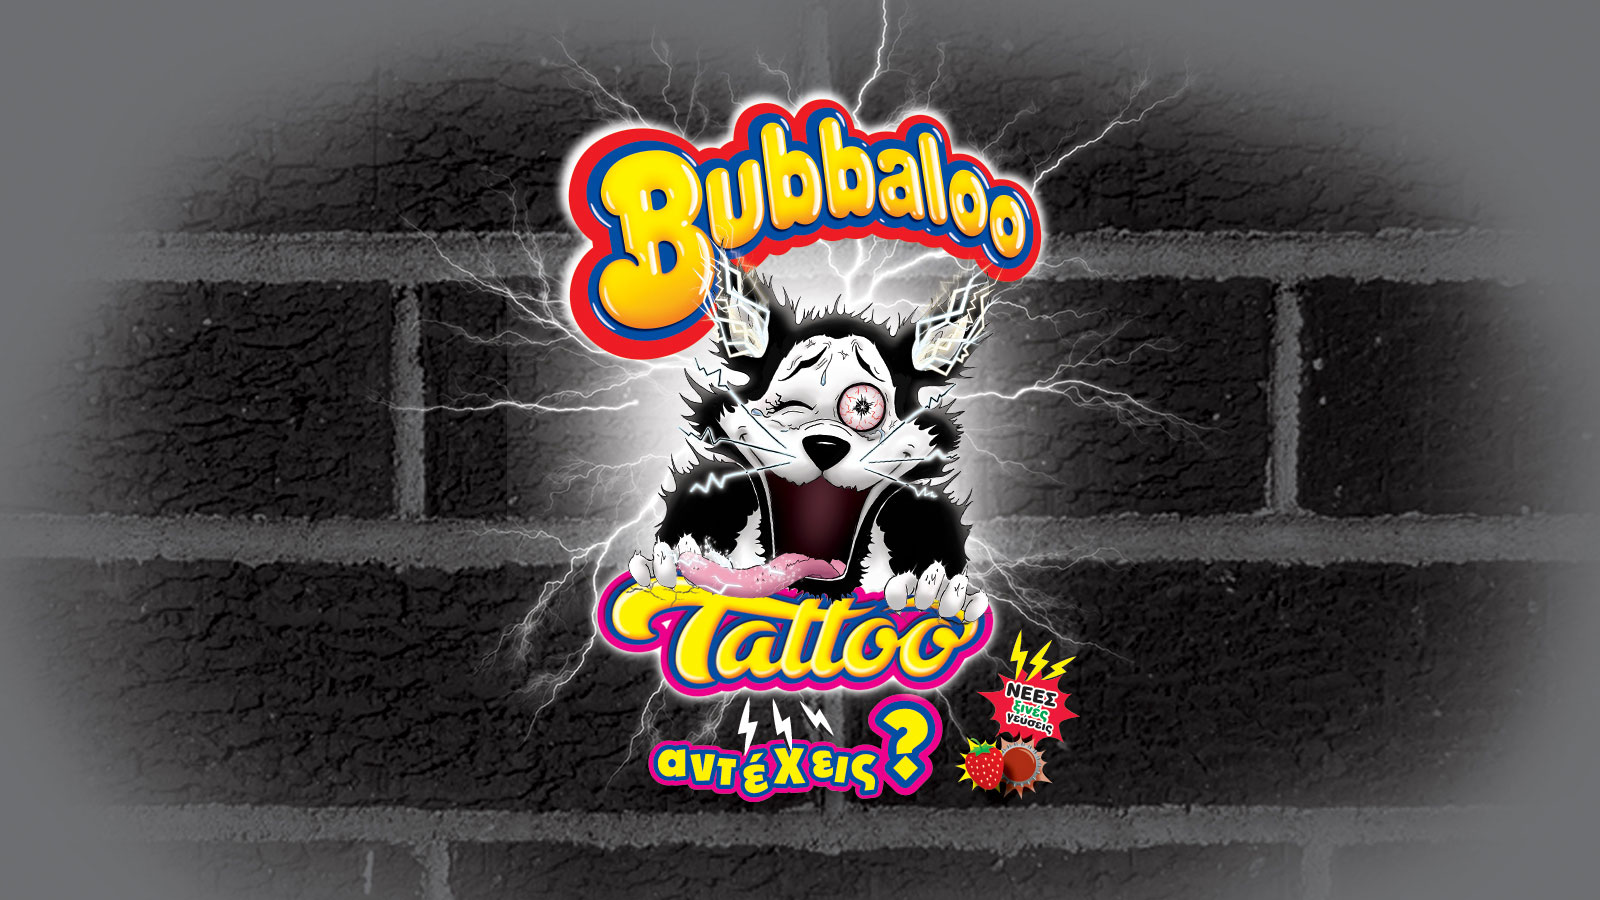 Bubbaloo Tattoo key visual